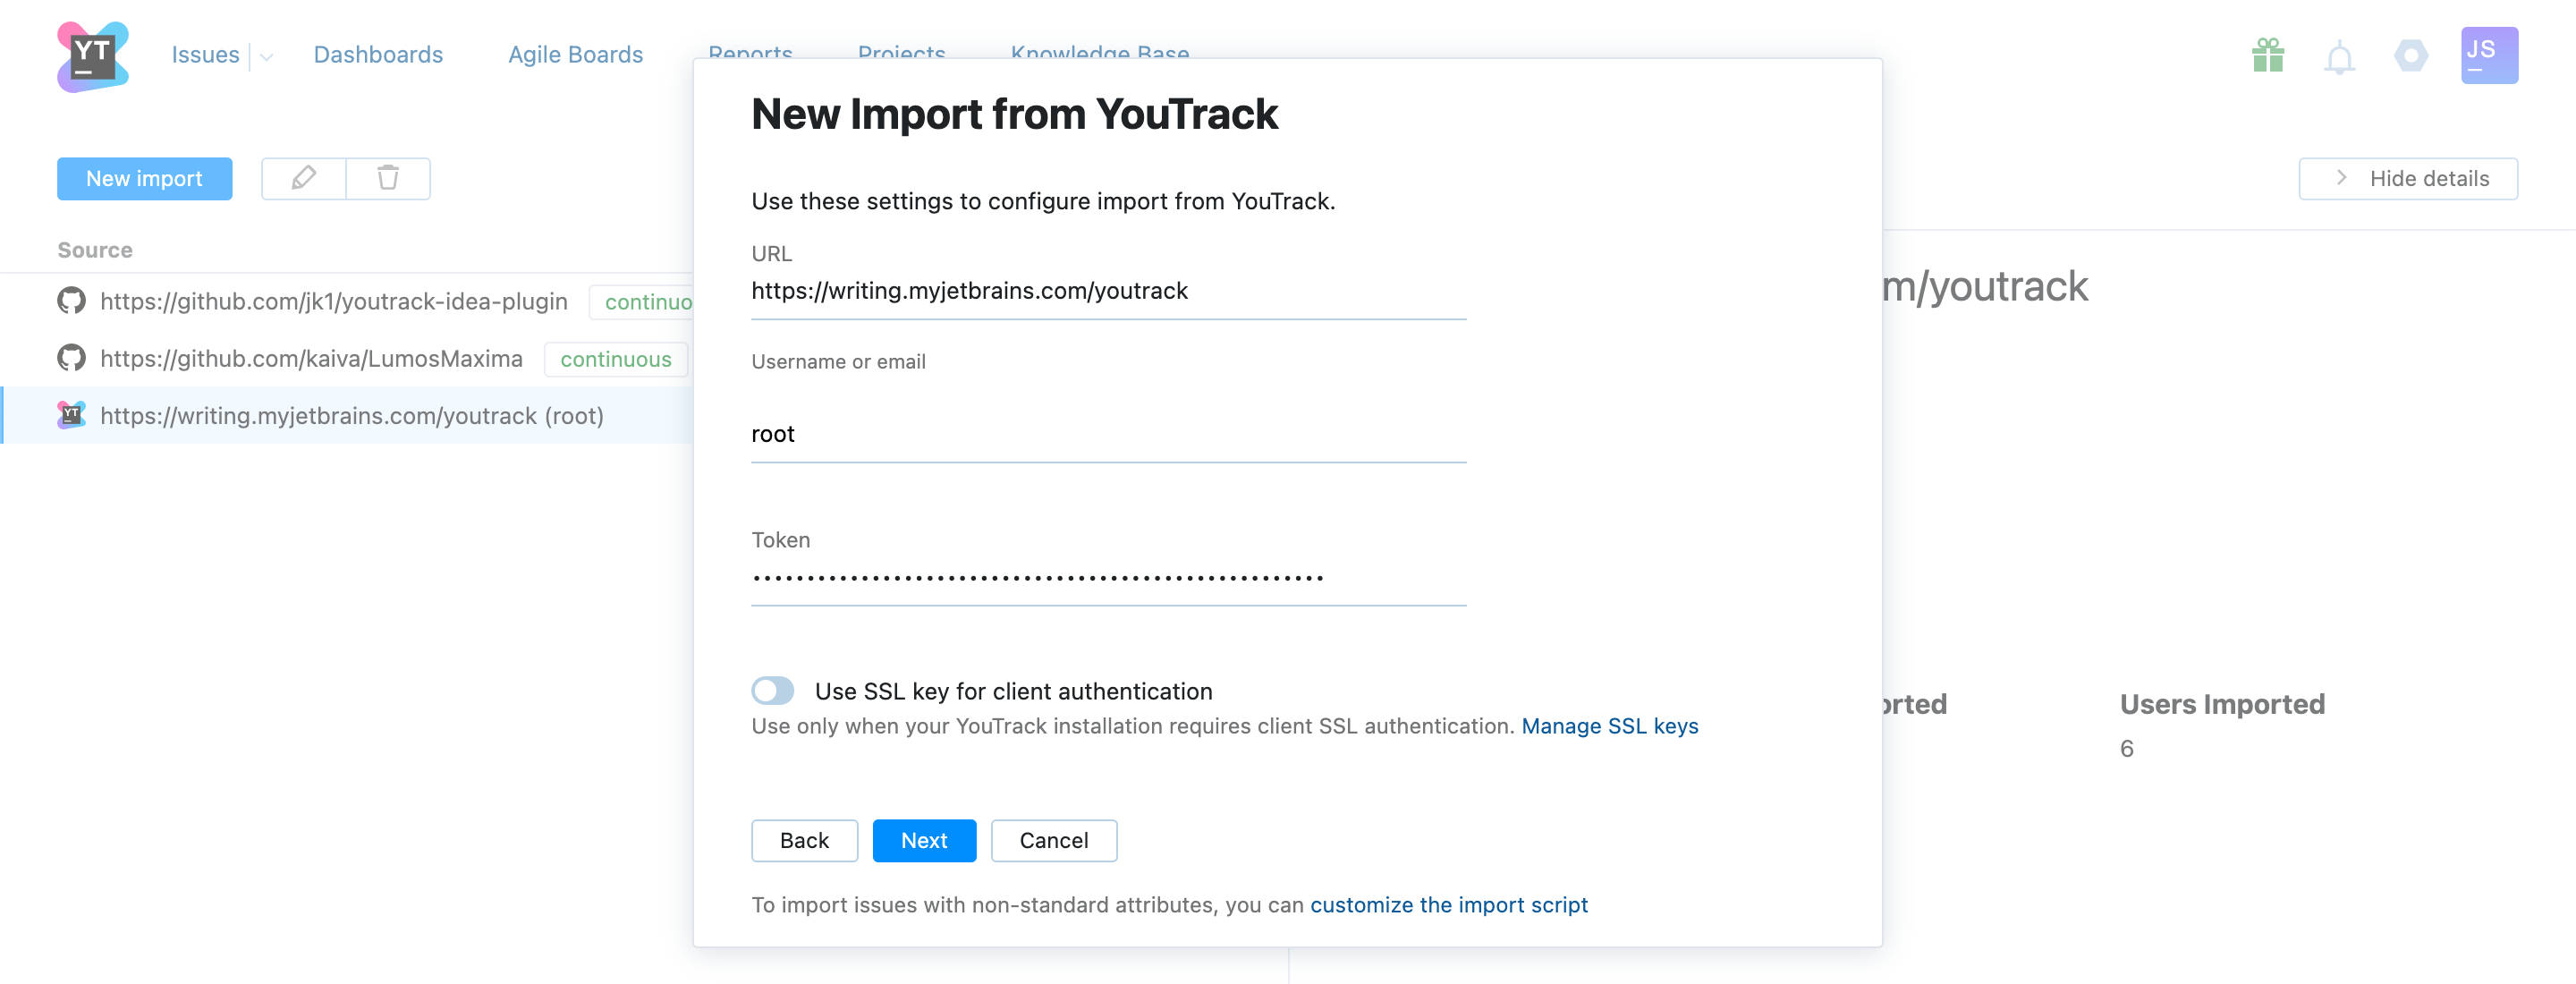 YouTrack import settings